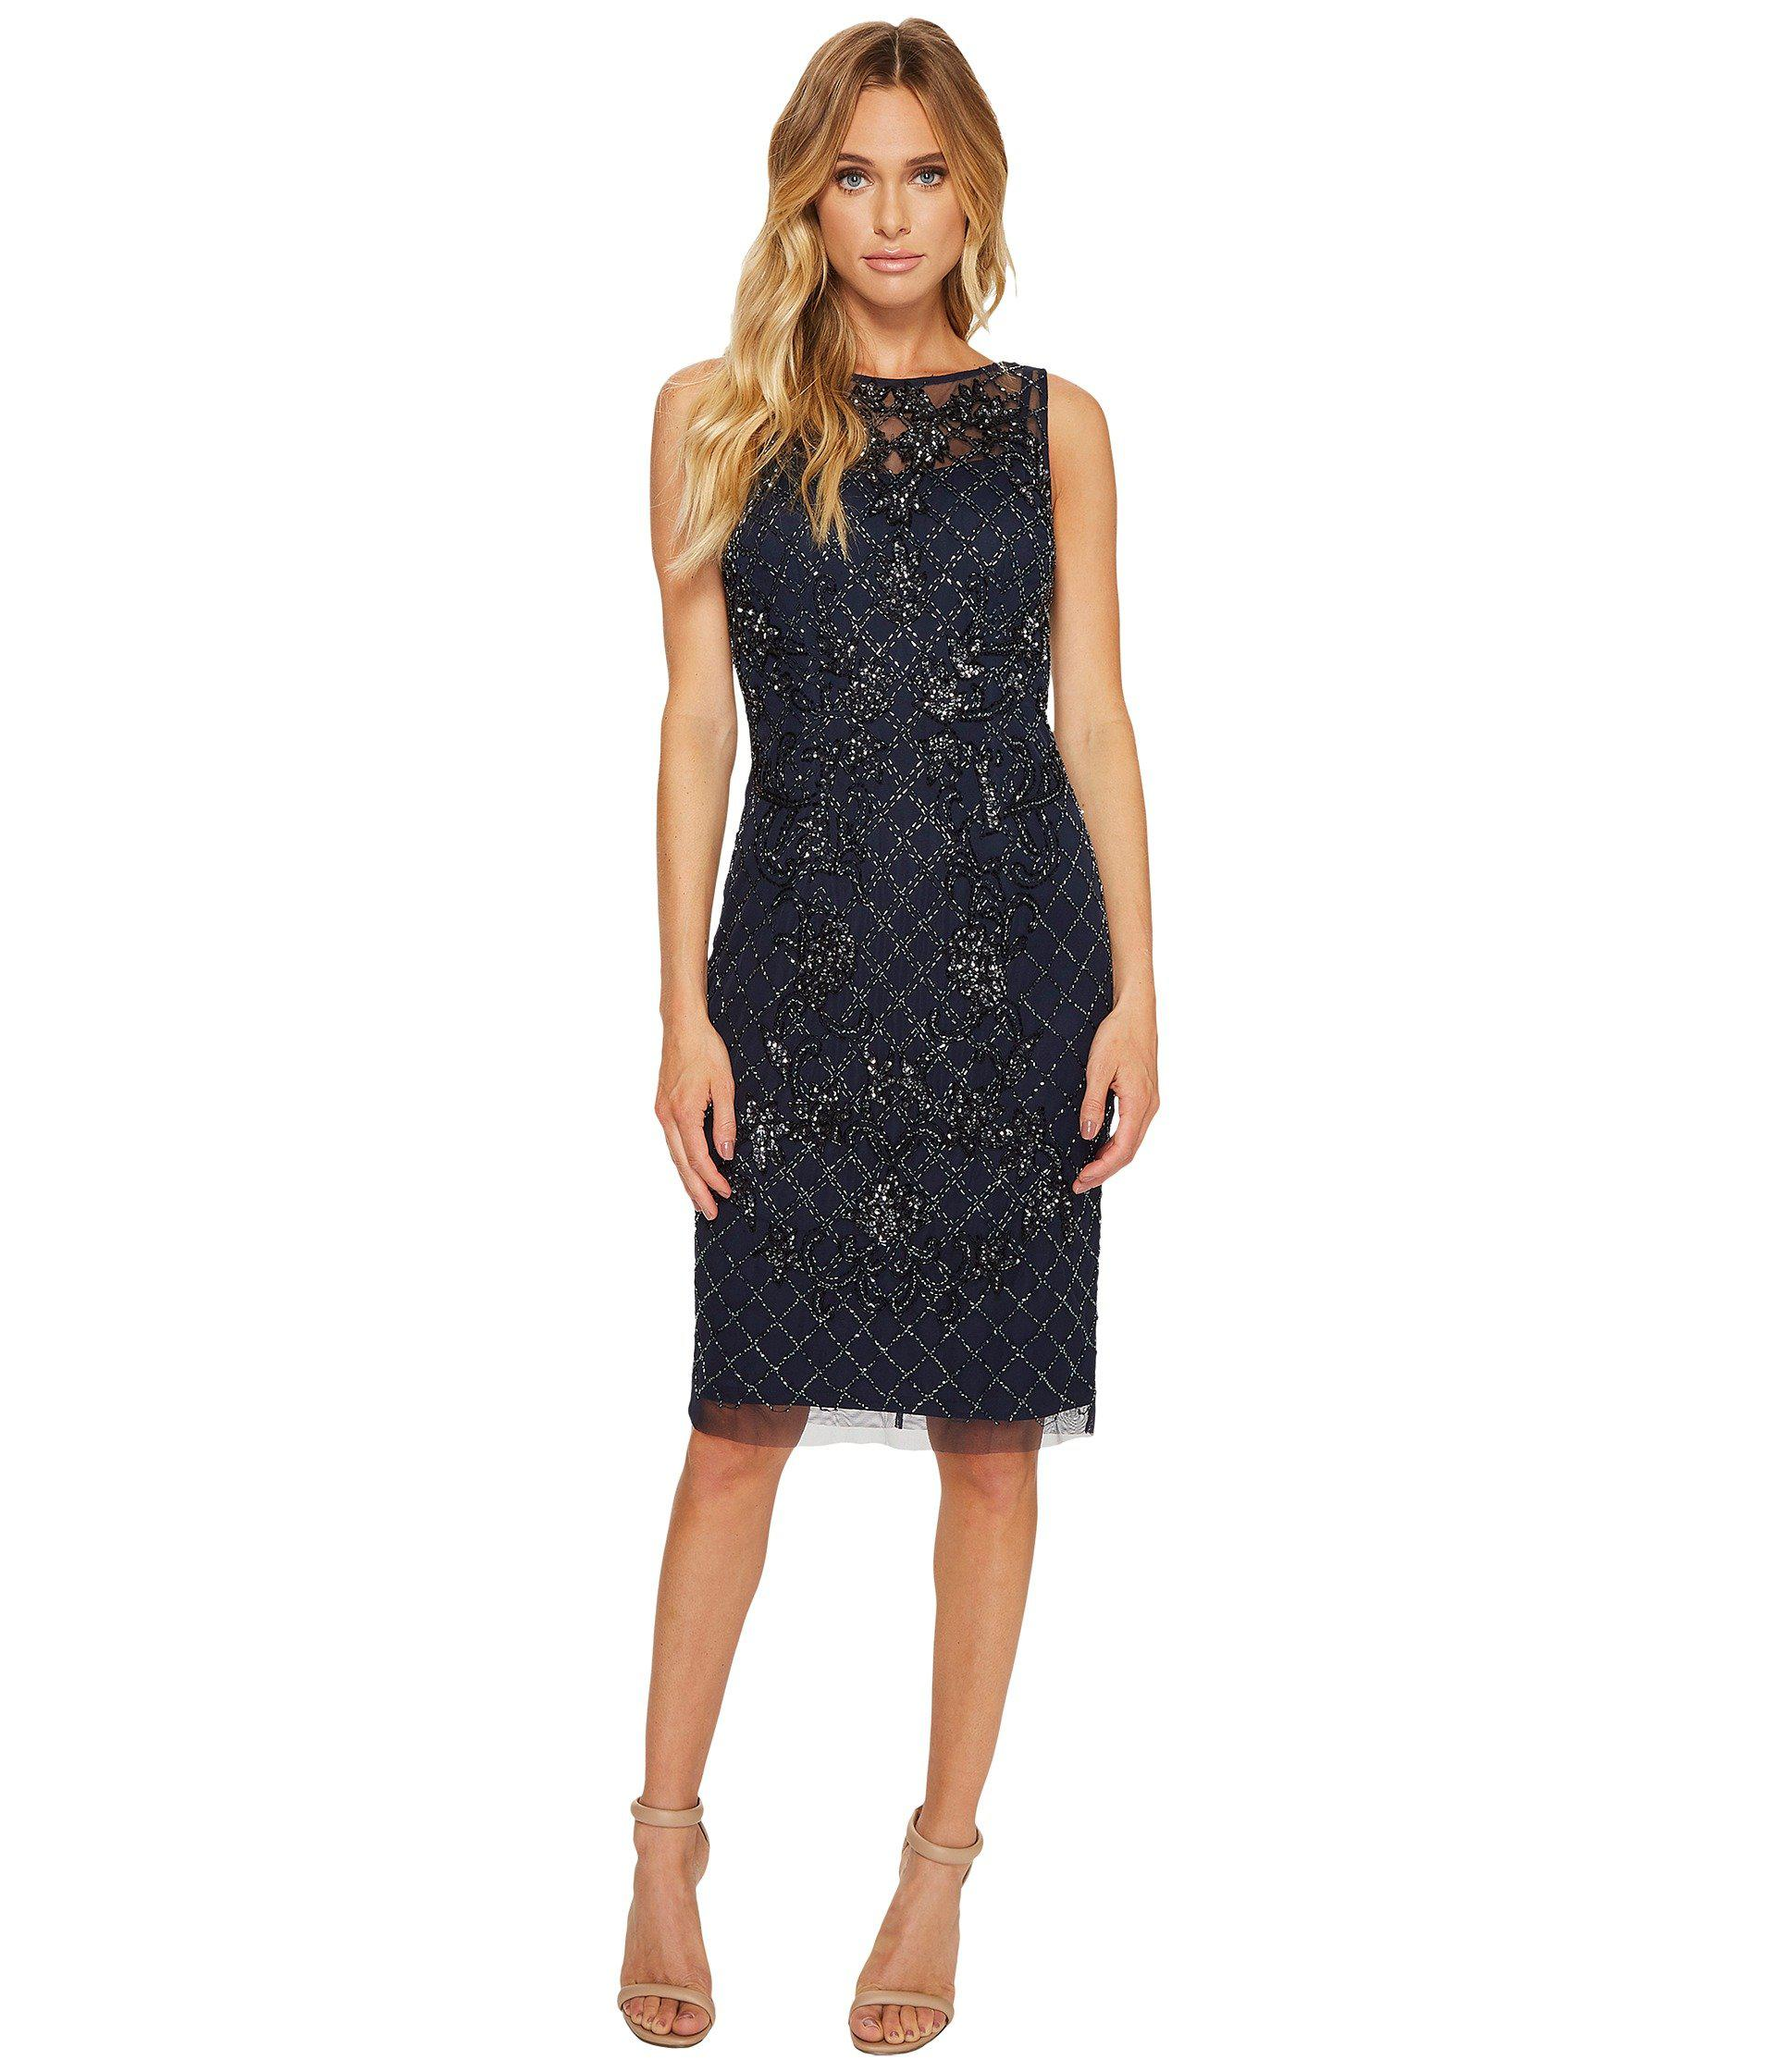 0cfa976baf6 Adrianna Papell Sleeveless Beaded Cocktail Dress With Illusion in ...